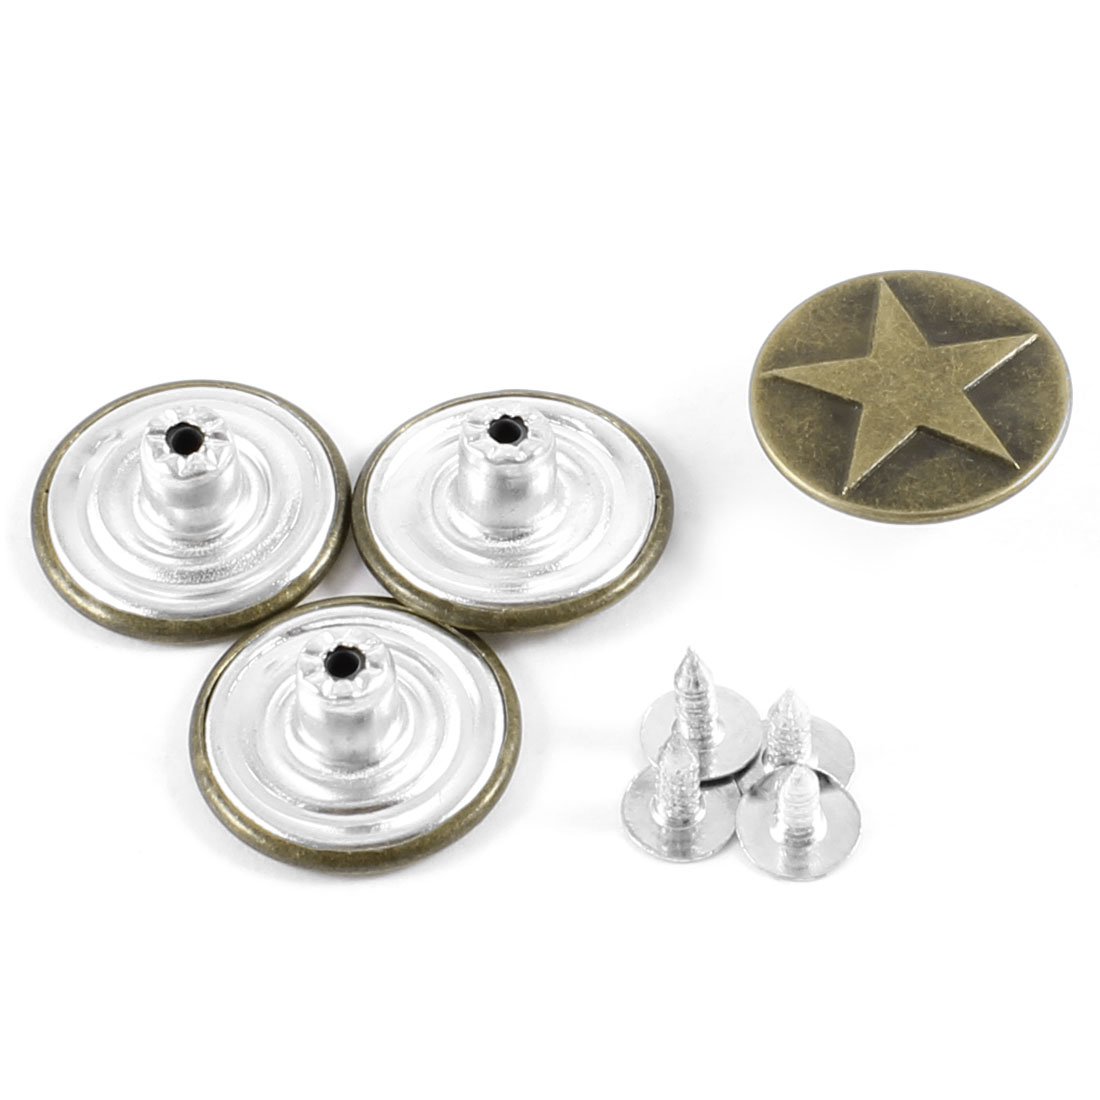 "4 Pcs 0.4"" High Replacing Part Star Print Jeans Buttons Copper Tone w Screws"